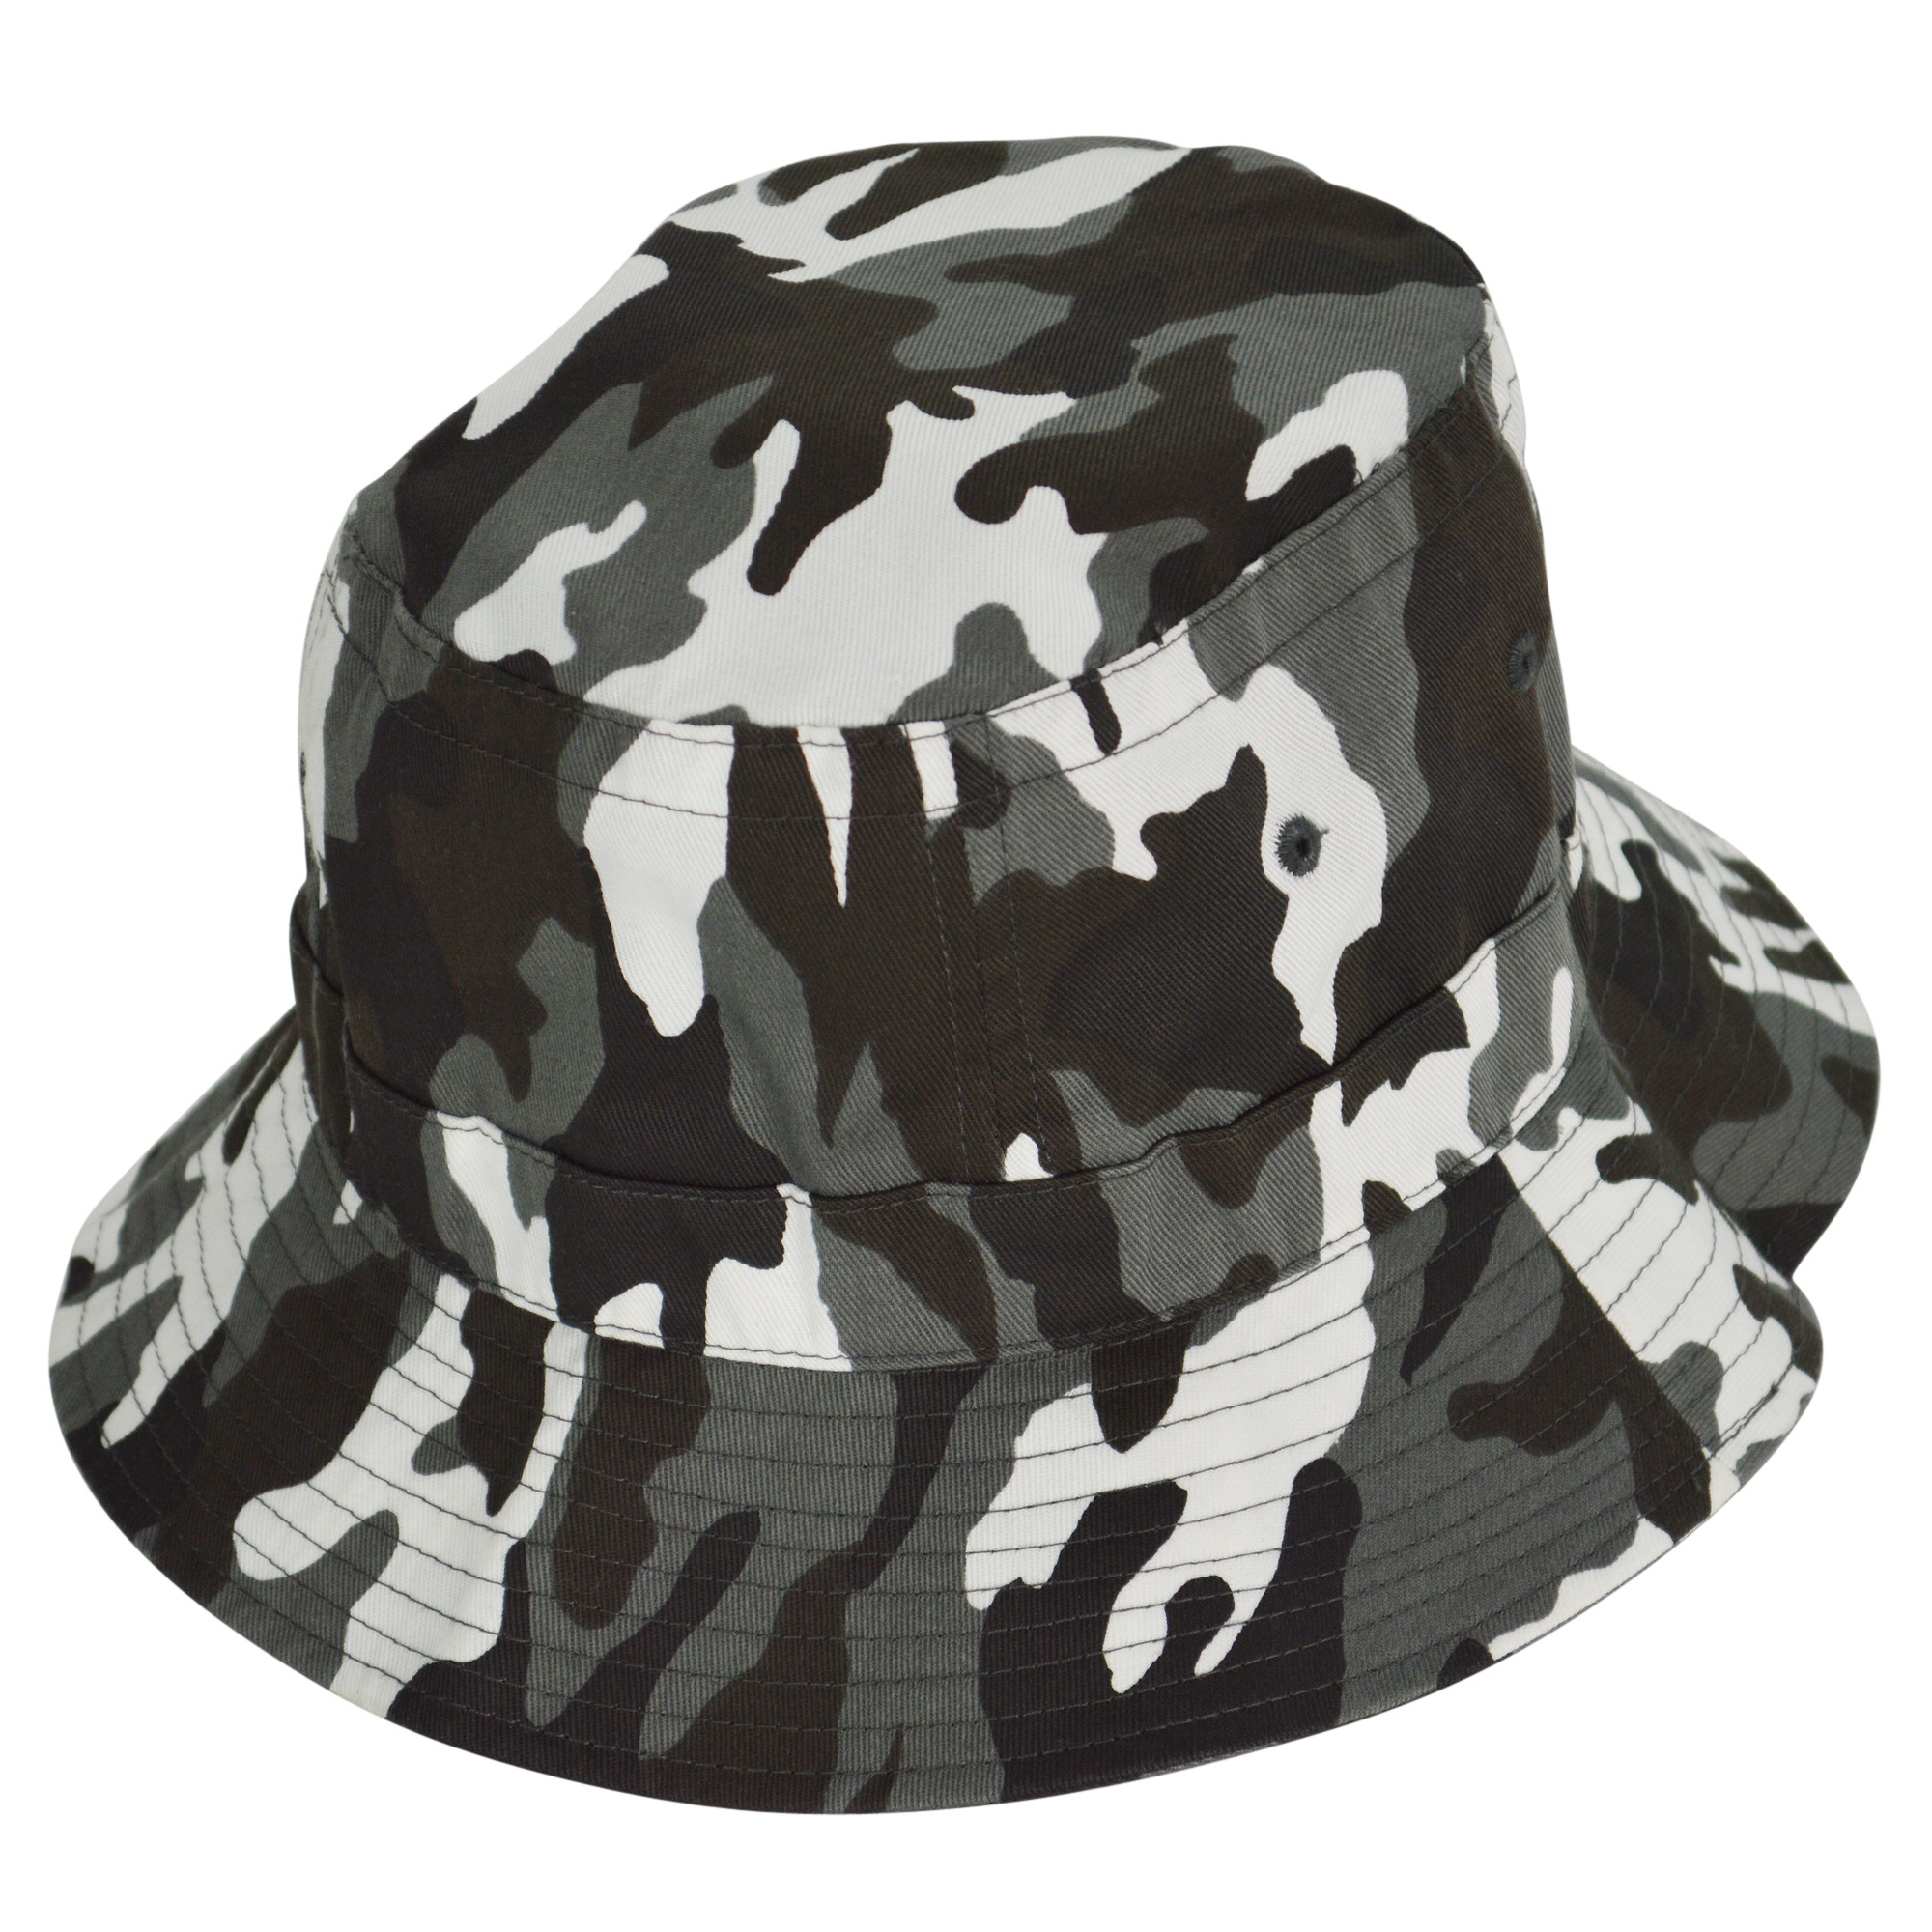 DALIX Gray Camouflage Washed Cotton Bucket Hat -Extra Large 7 3/8 Size